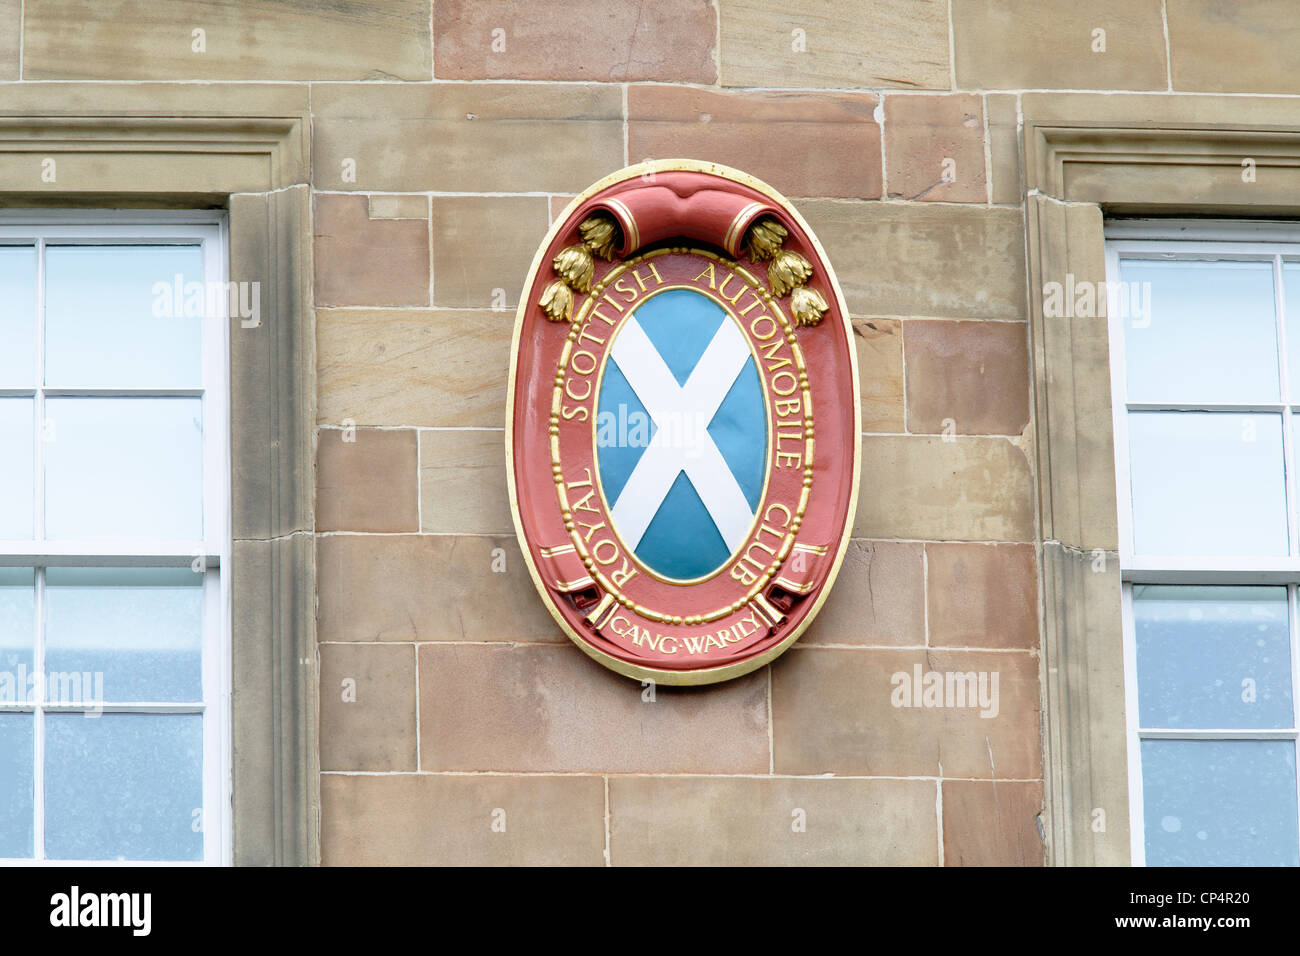 Sign on the Blythswood Square Hotel housed in the former Royal Scottish Automobile Club building in Glasgow Scotland - Stock Image